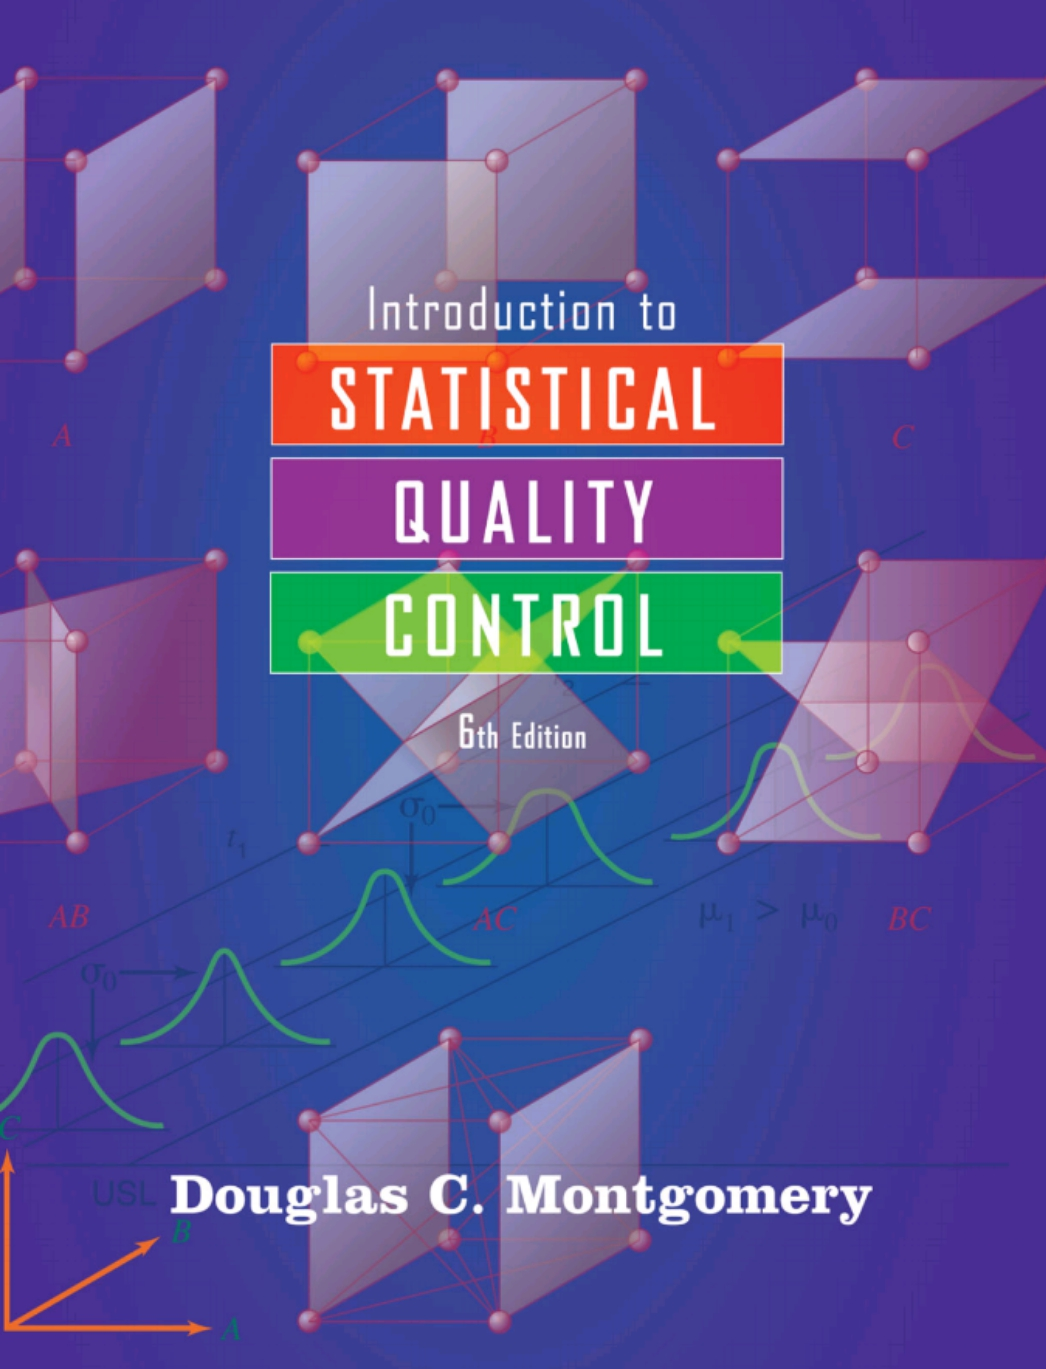 Download Introduction to Statistical Quality Control, 6th Edition Complete Textbook